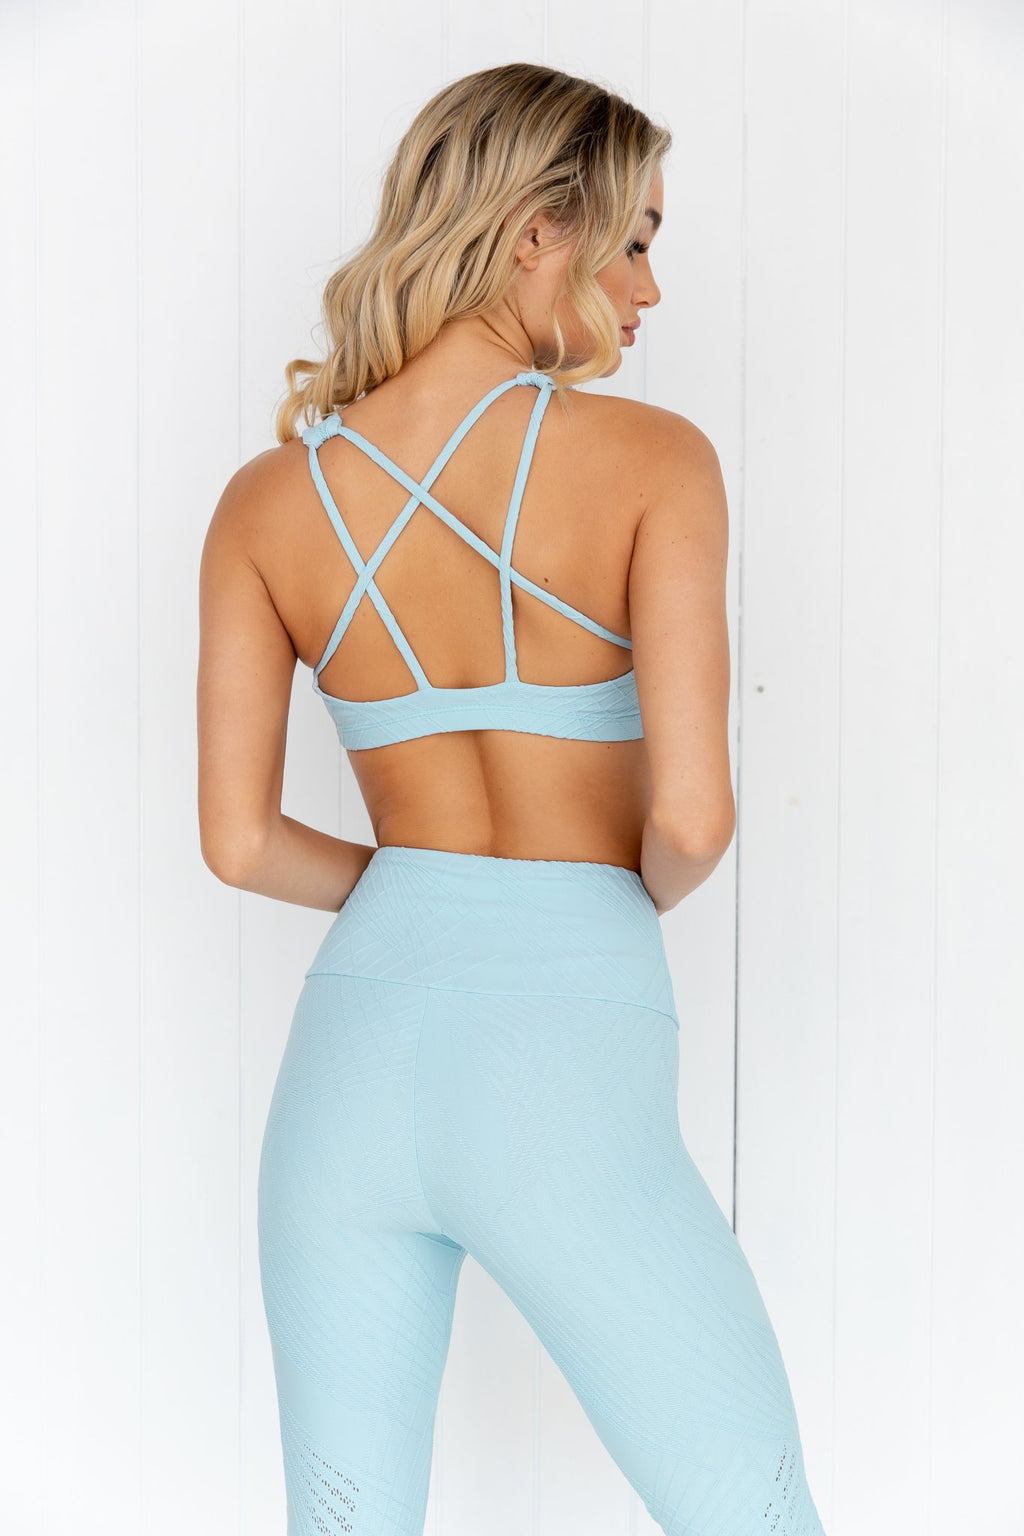 Selenite Mudra Bra  - Powder Blue